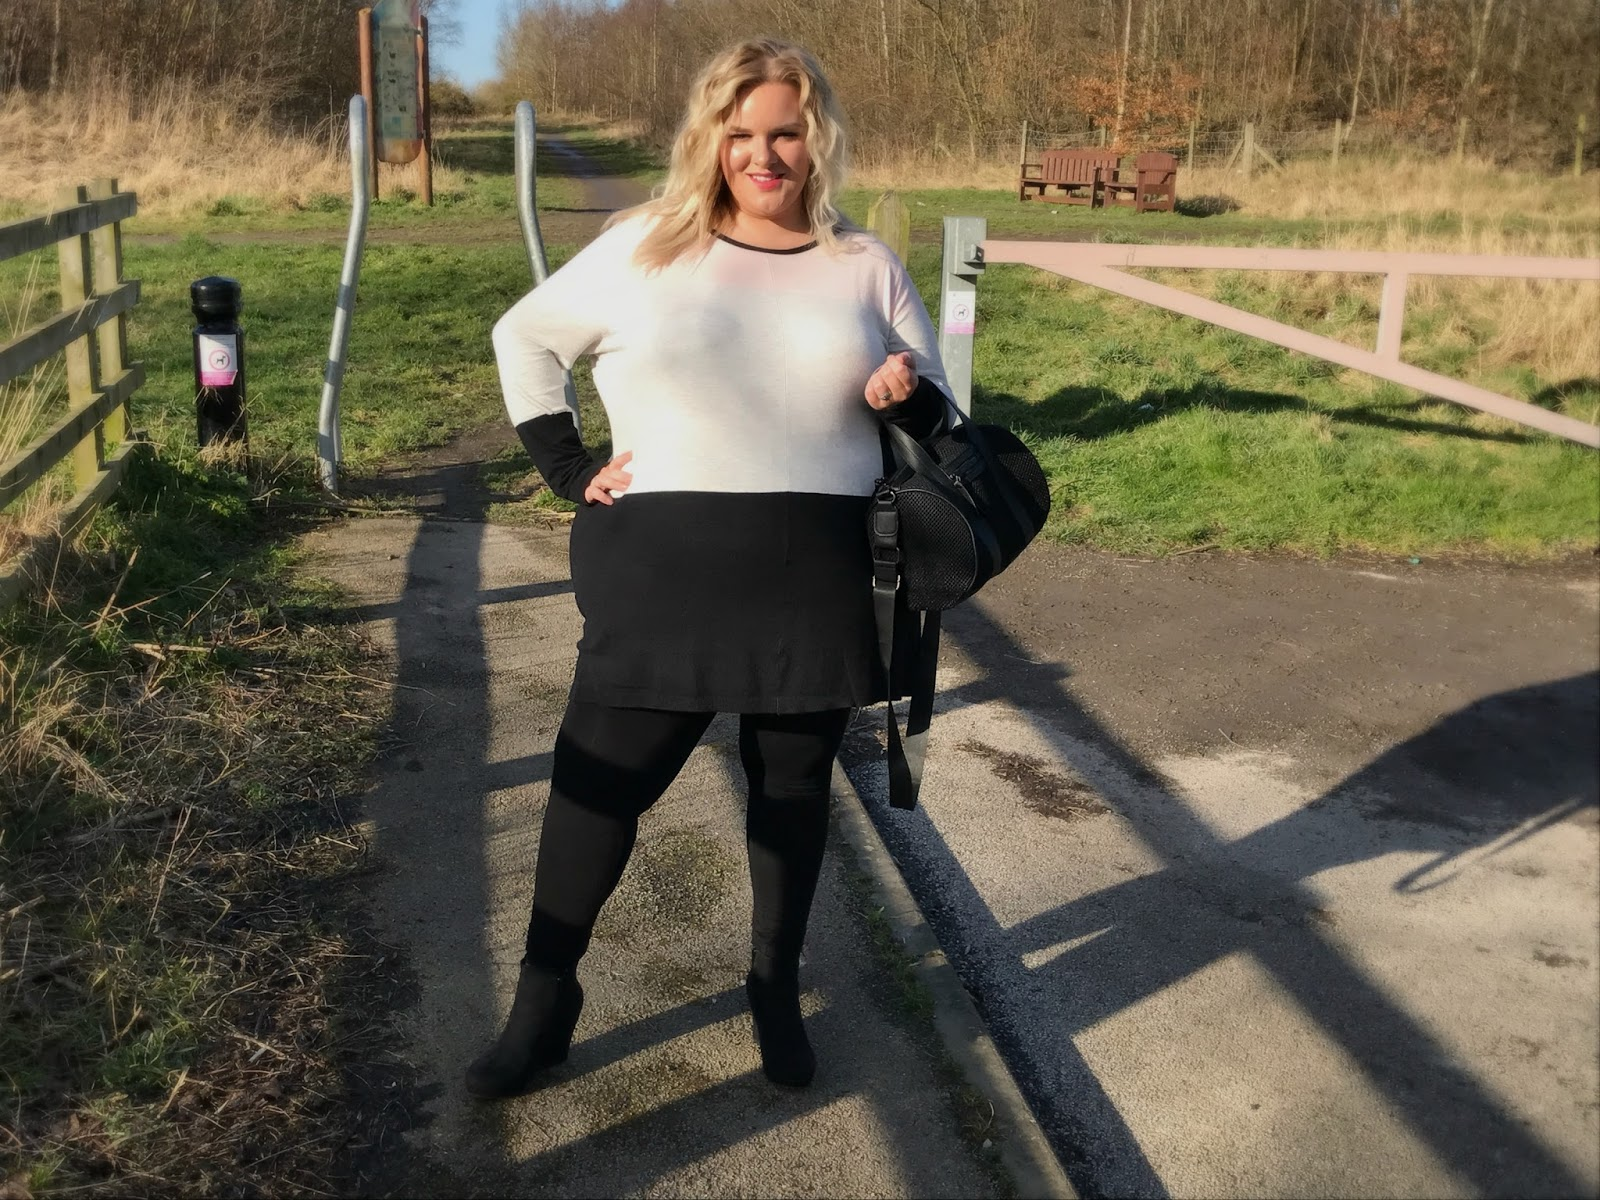 J s everyday fashion on twitter hateful comment re - Plus Size Spring Wardrobe Essential From Yours Clothing